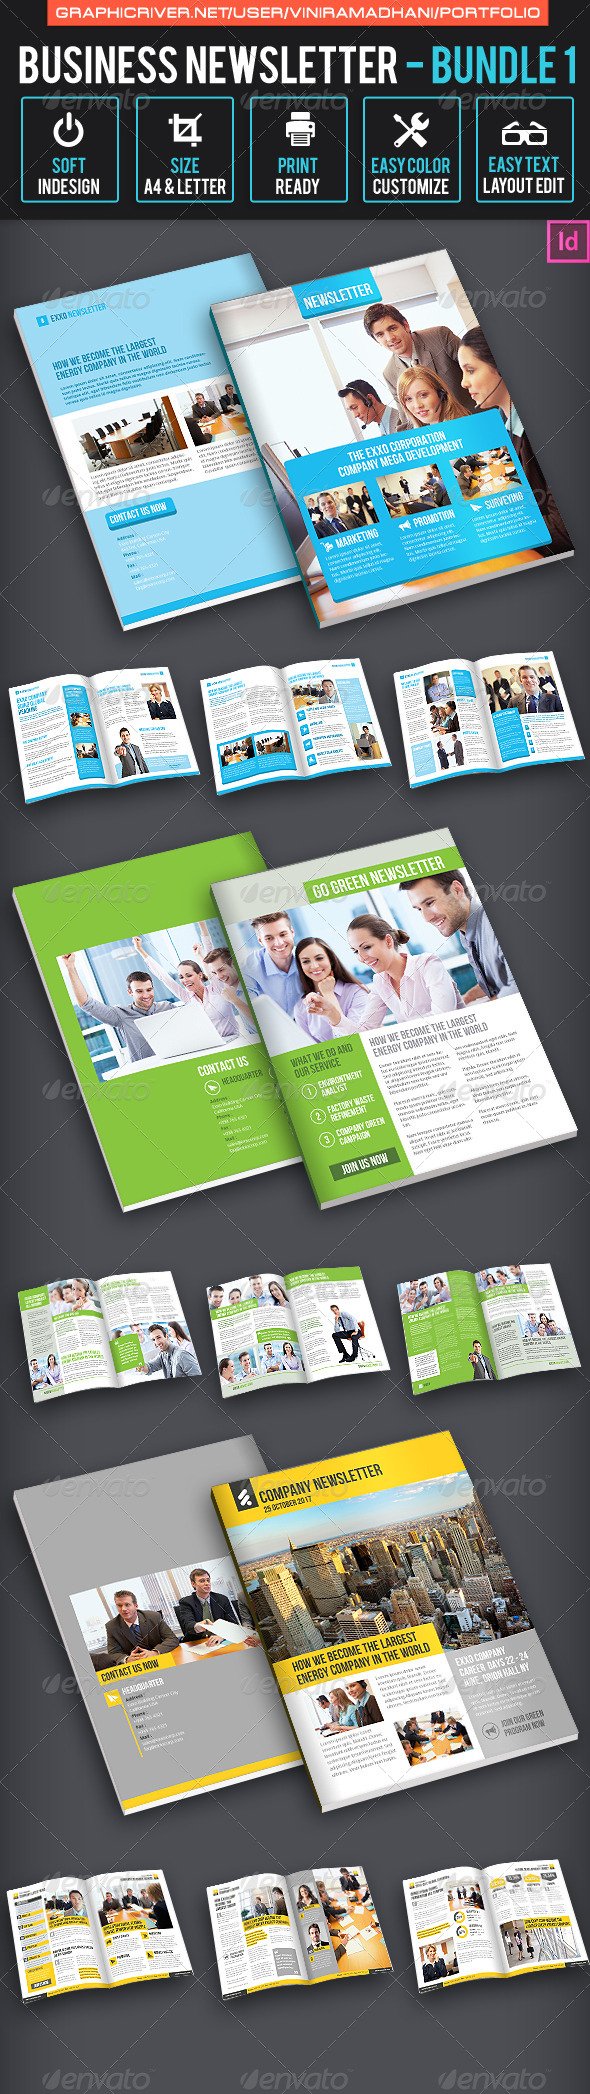 GraphicRiver Business Newsletter Bundle 1 7325233